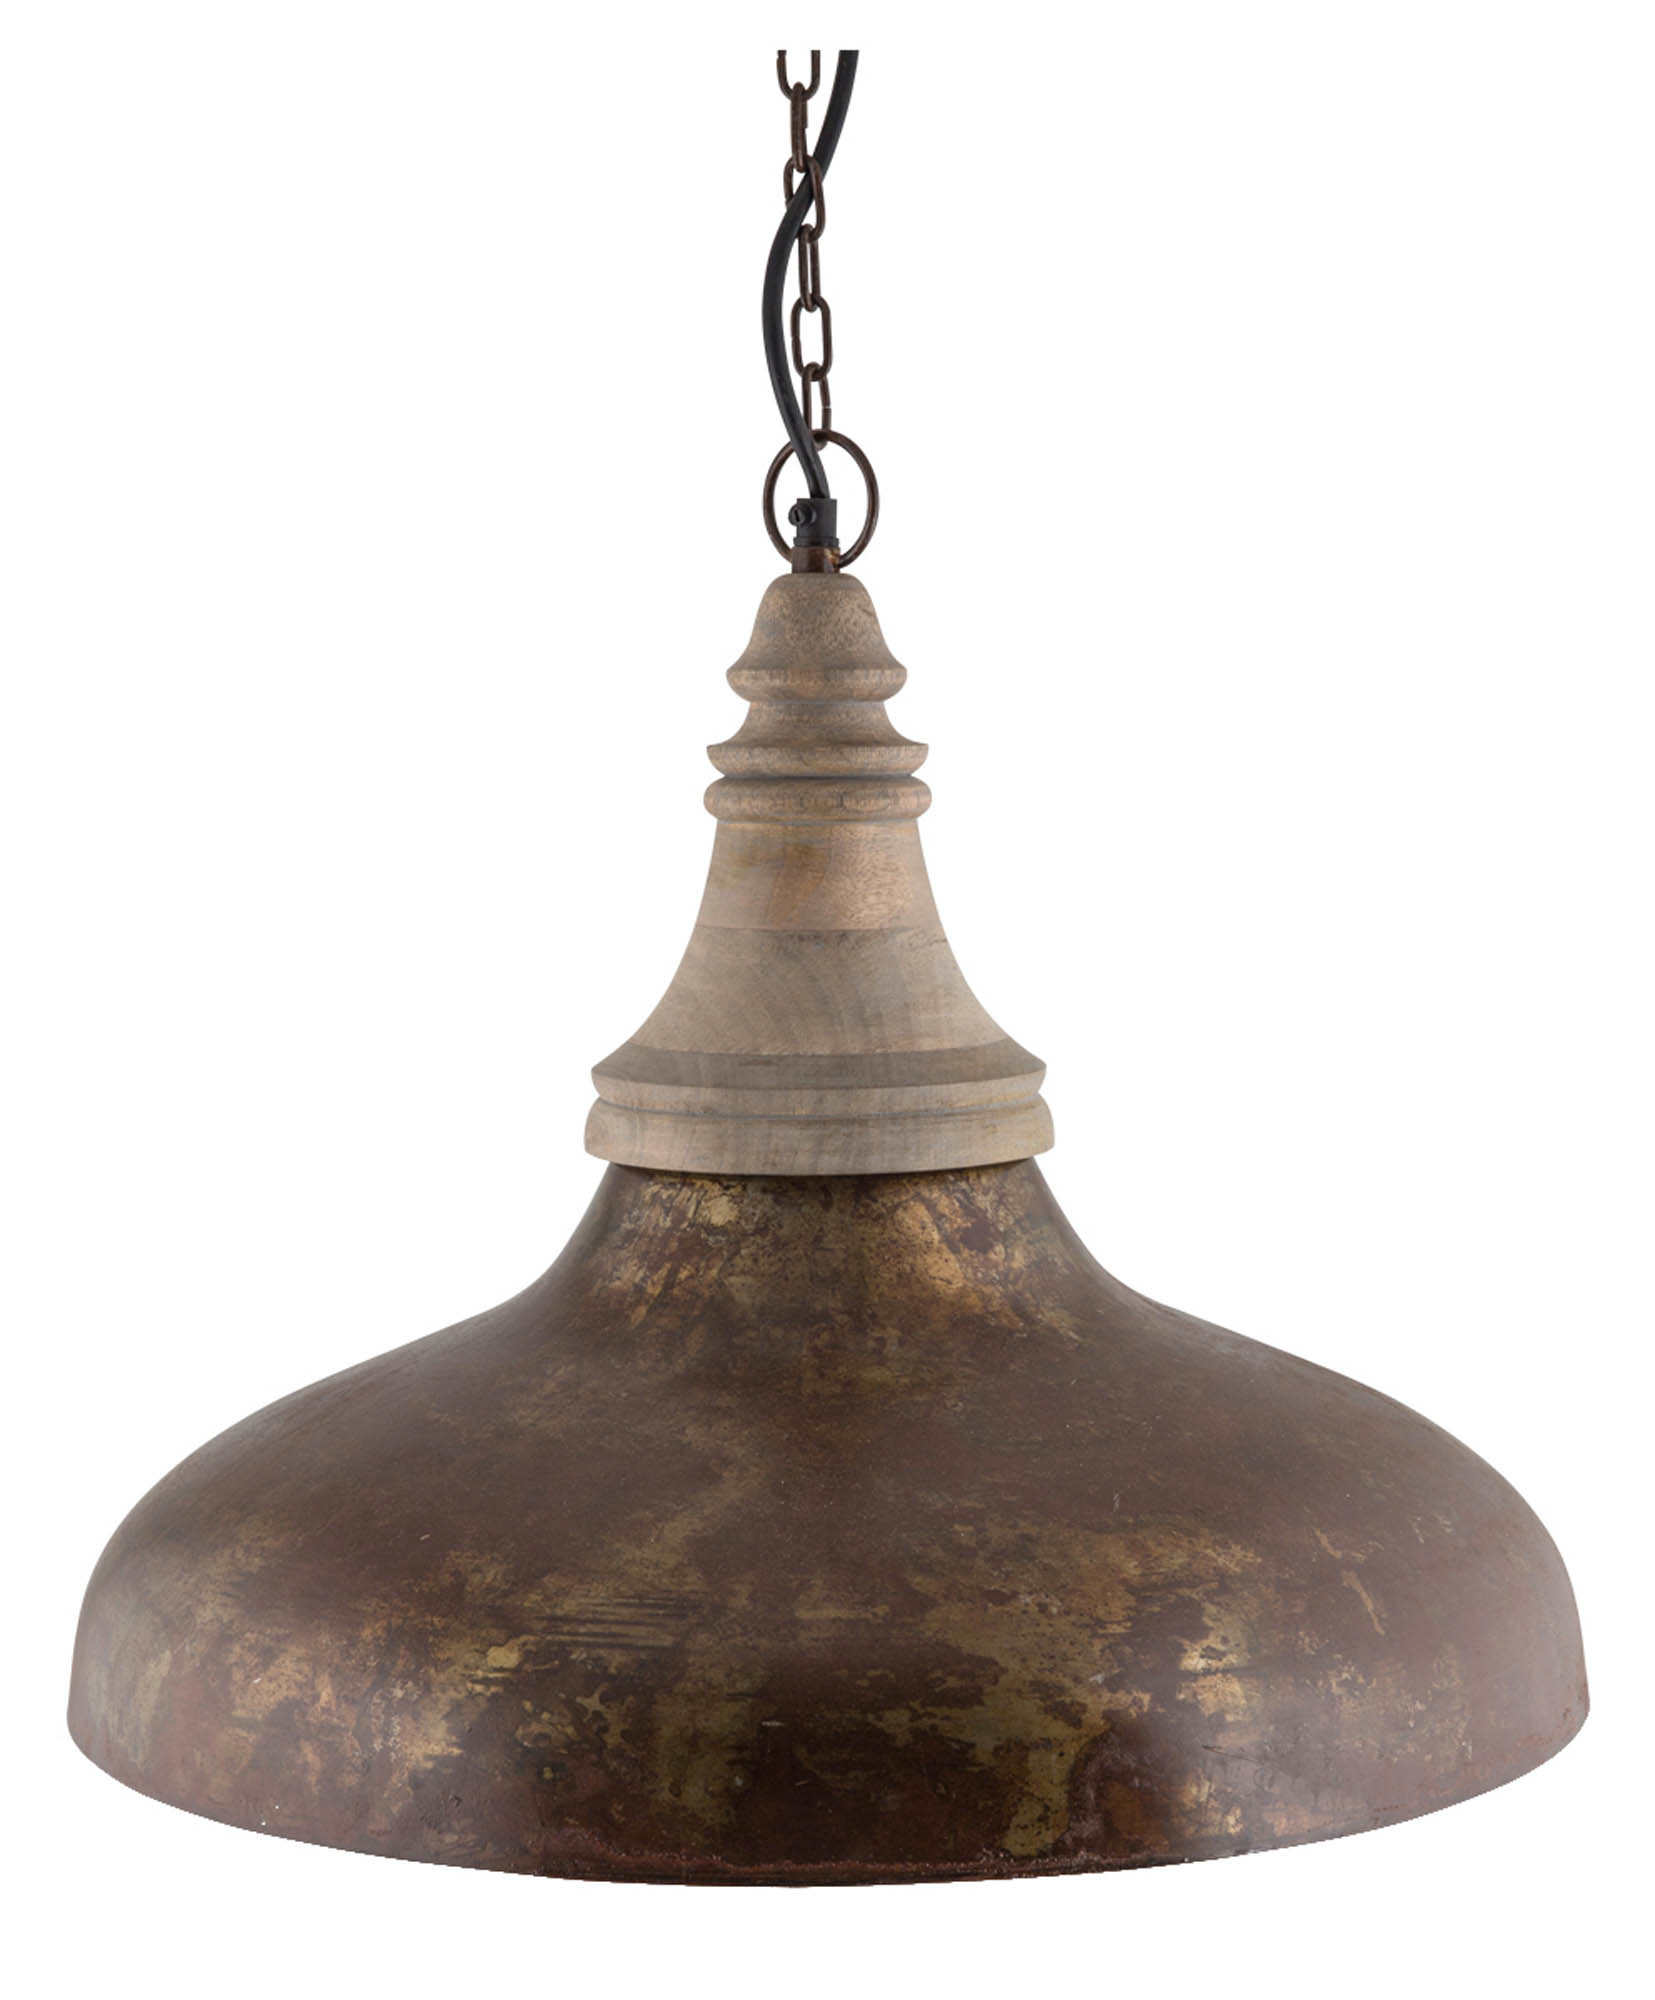 NEW Rustic Brown Iron & Wood Pendant Light